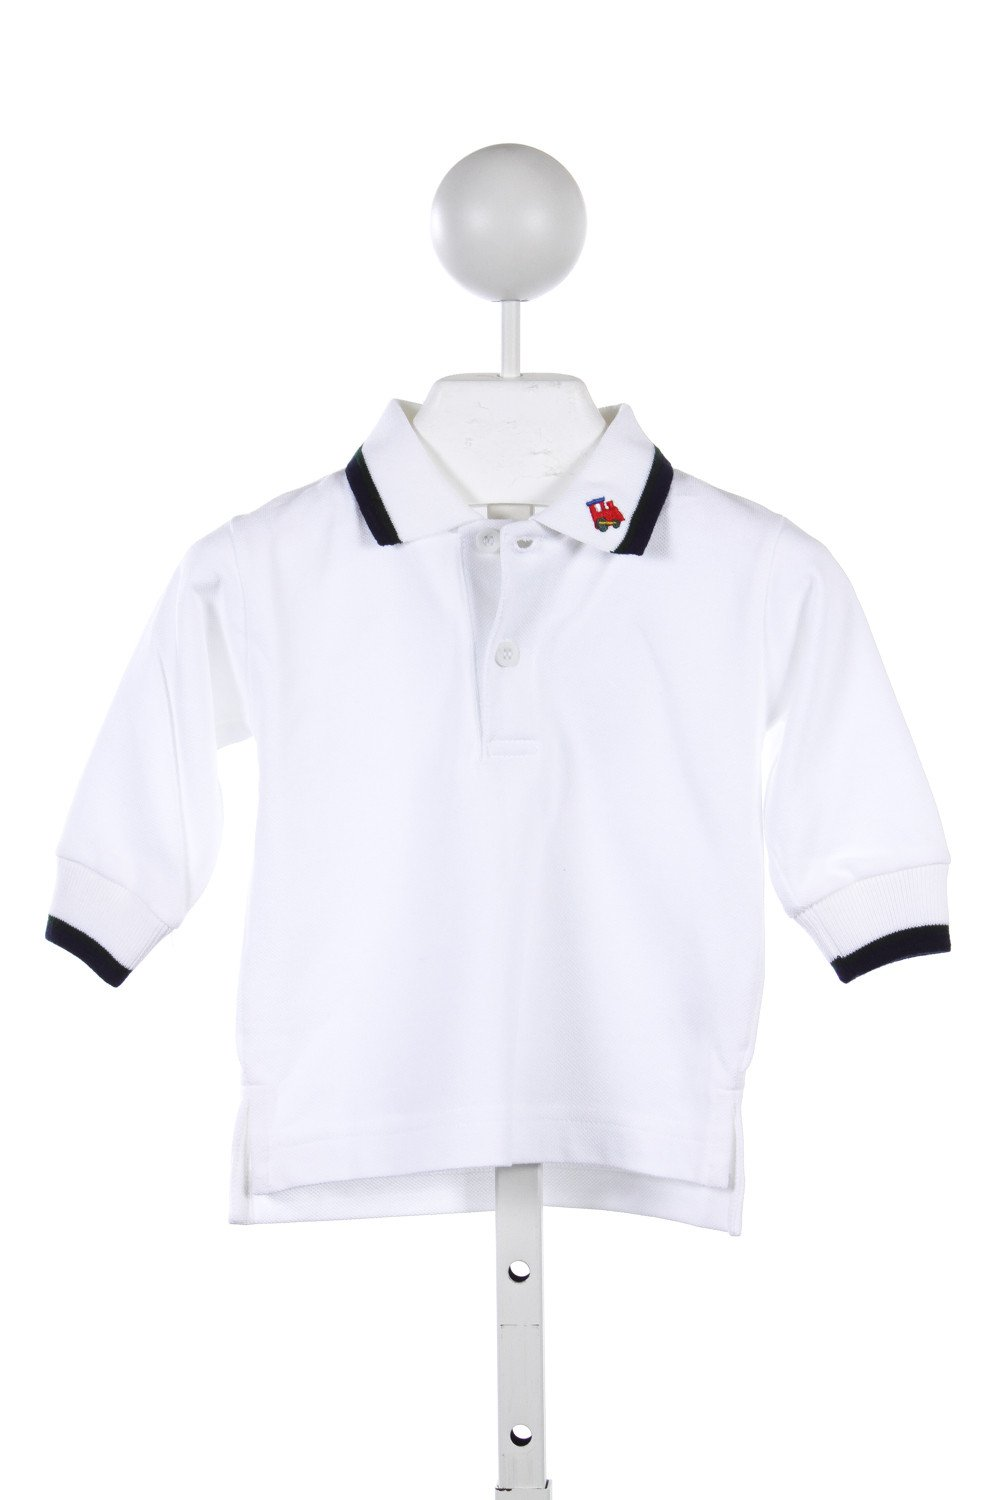 Florence Eiseman White Polo Shirt With Navygreen Trim And